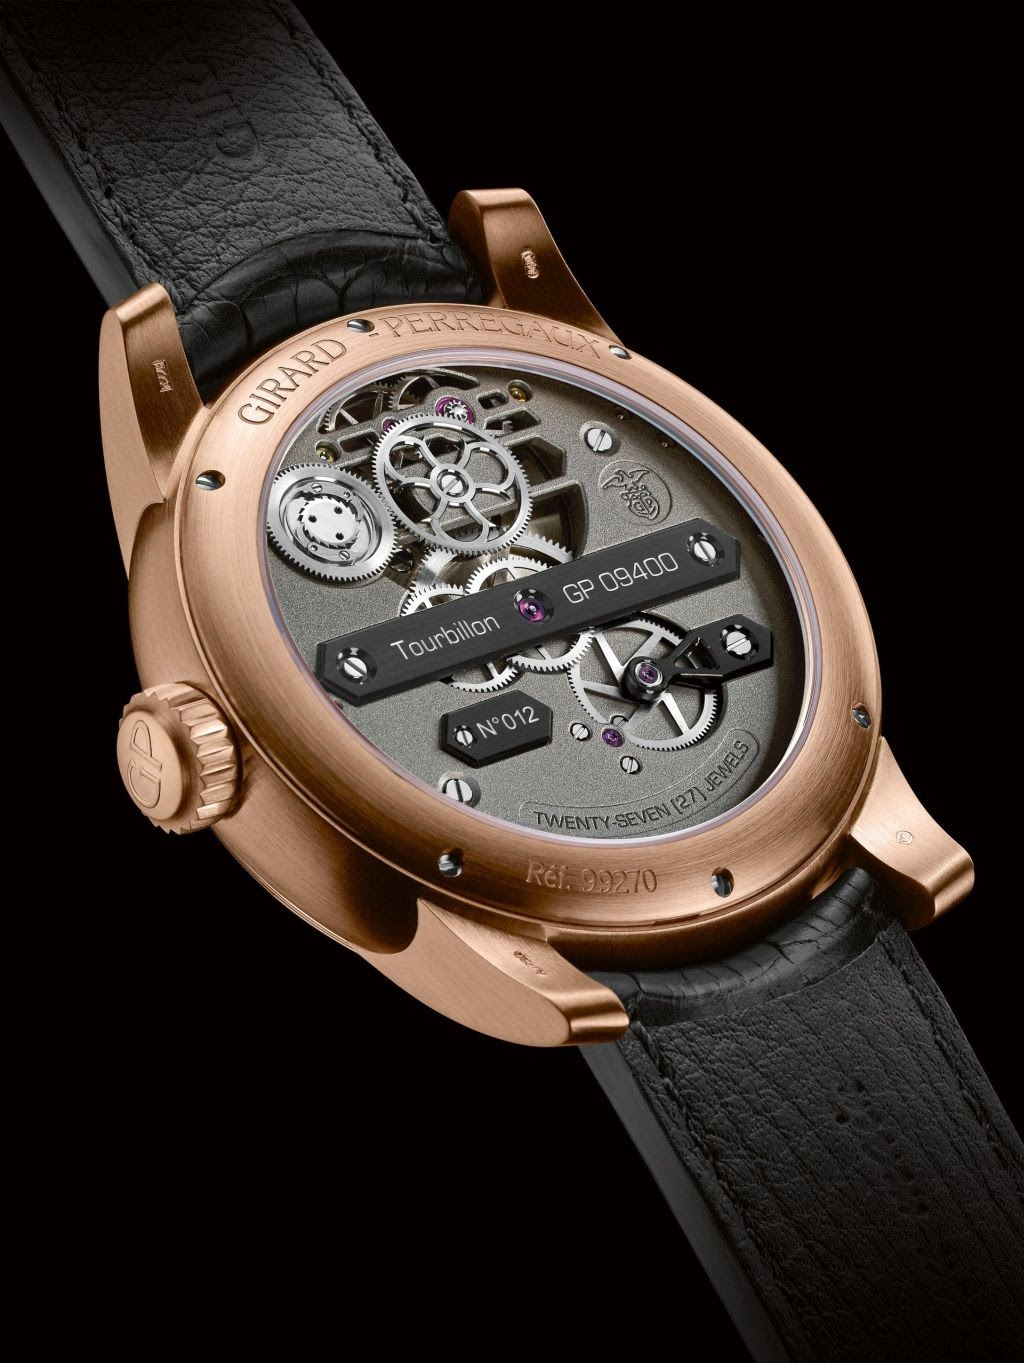 Girard-Perregaux Neo Tourbillon Three Bridges - Caseback